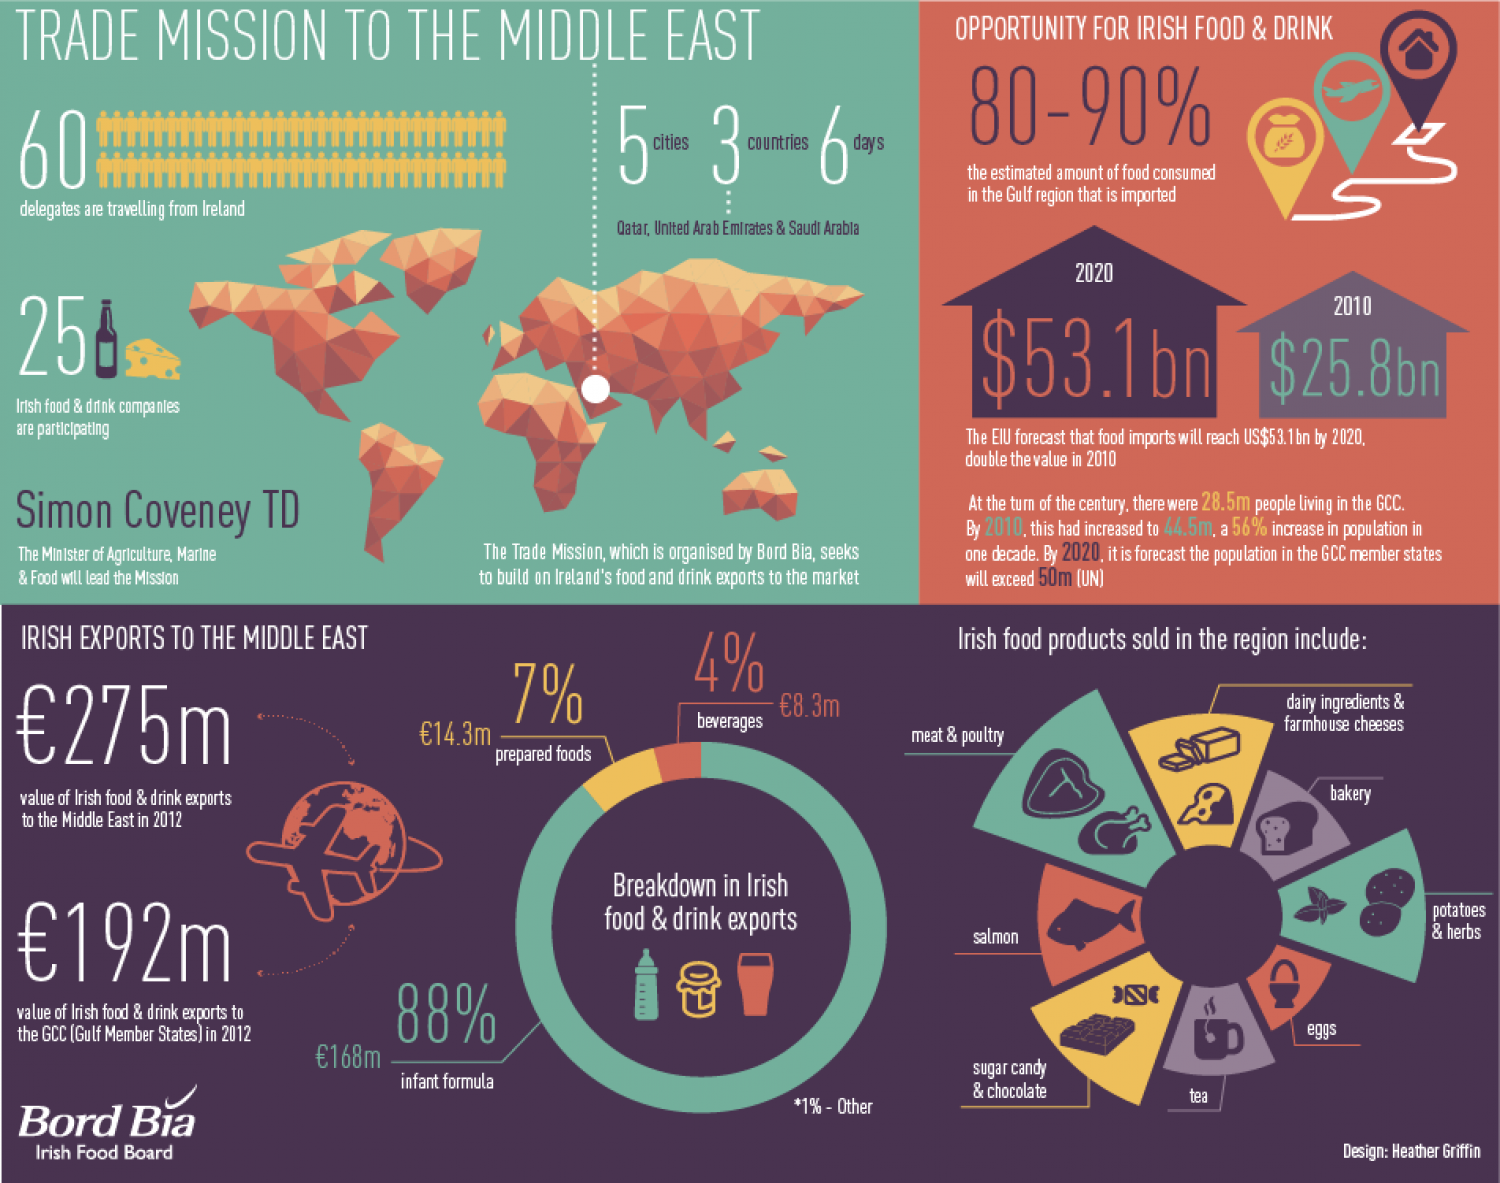 Trade Mission to the Middle East  Infographic